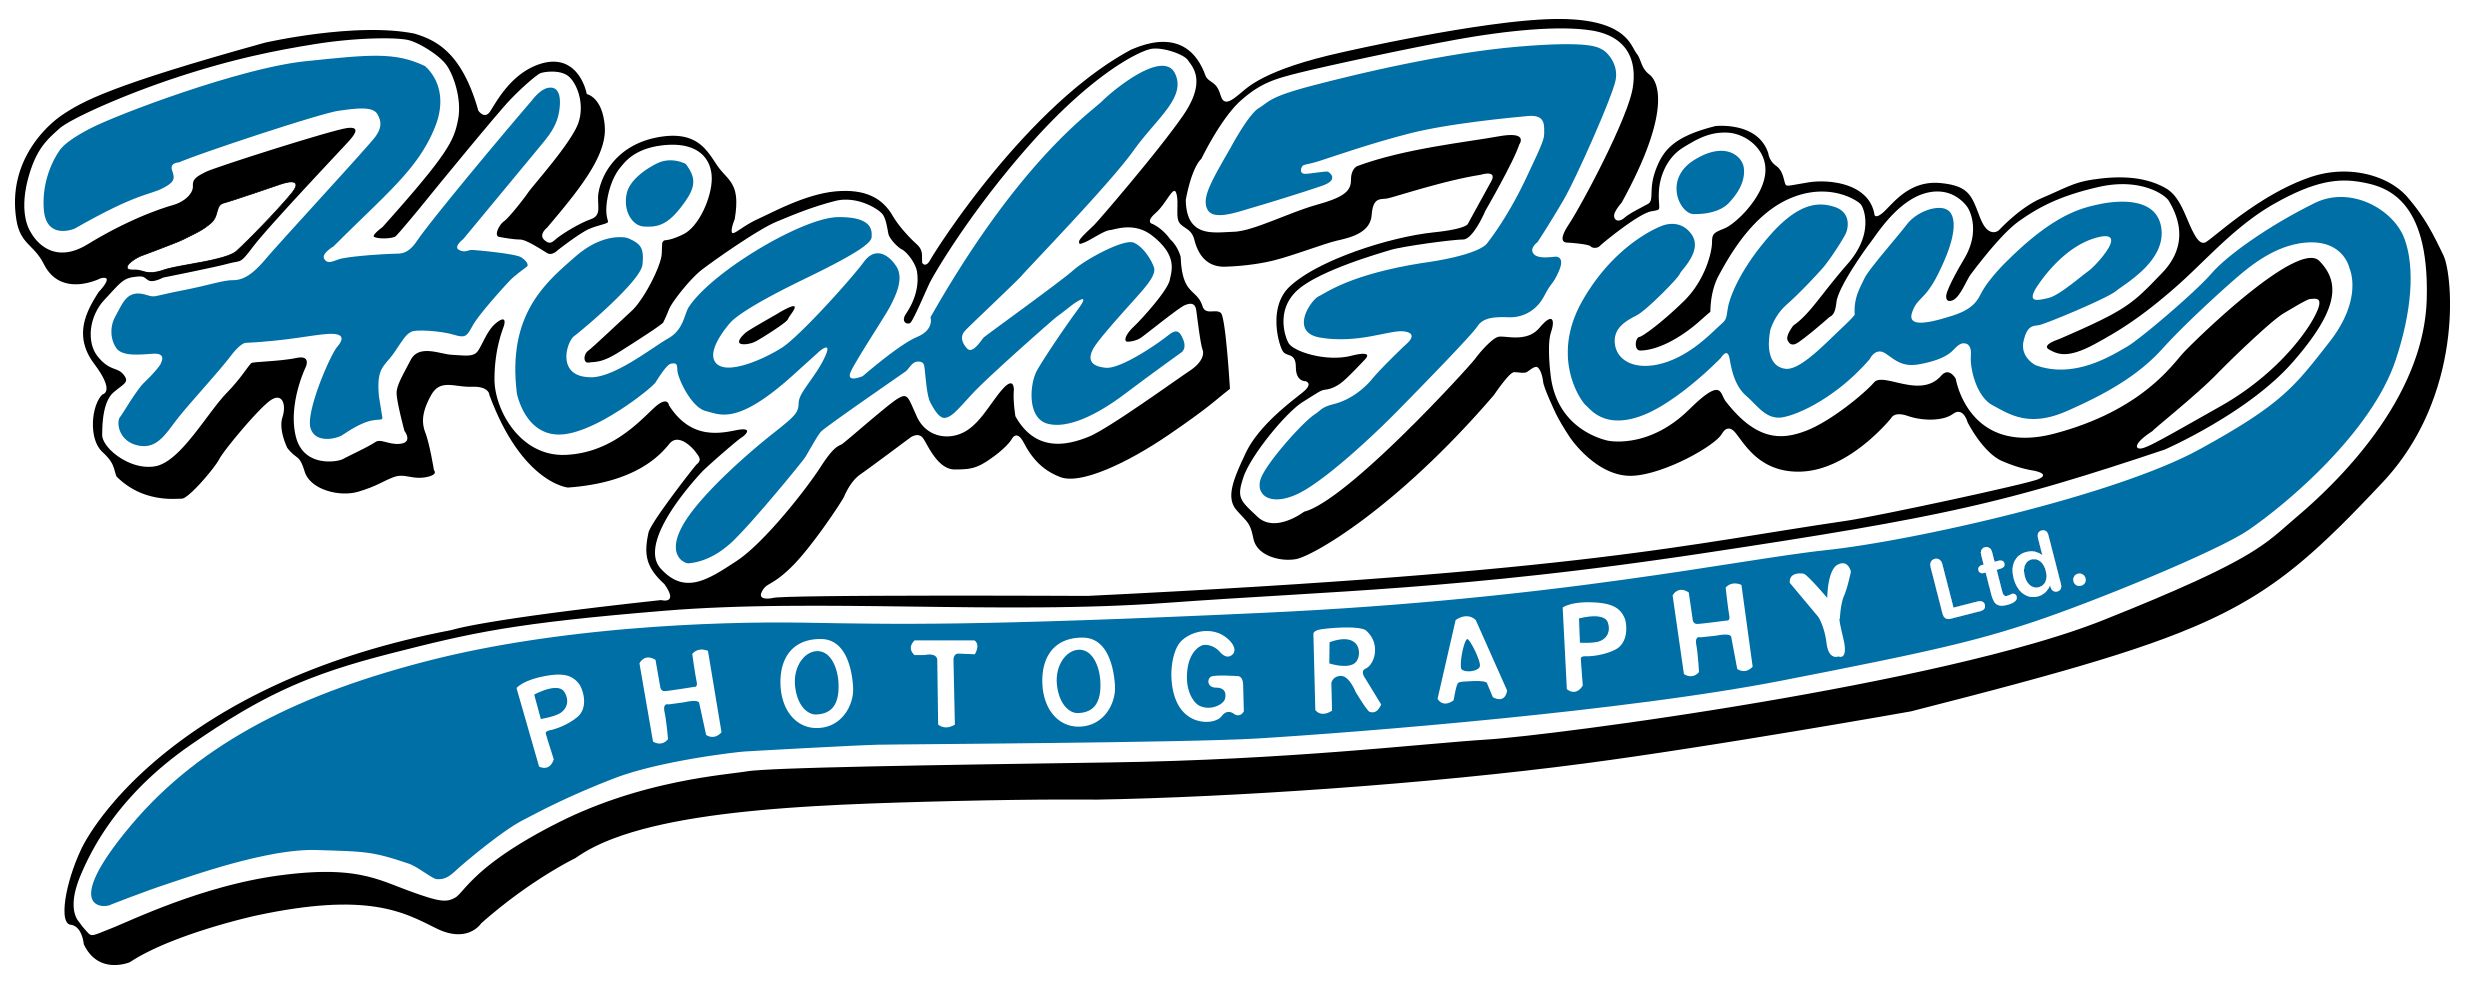 HighFive Photography.